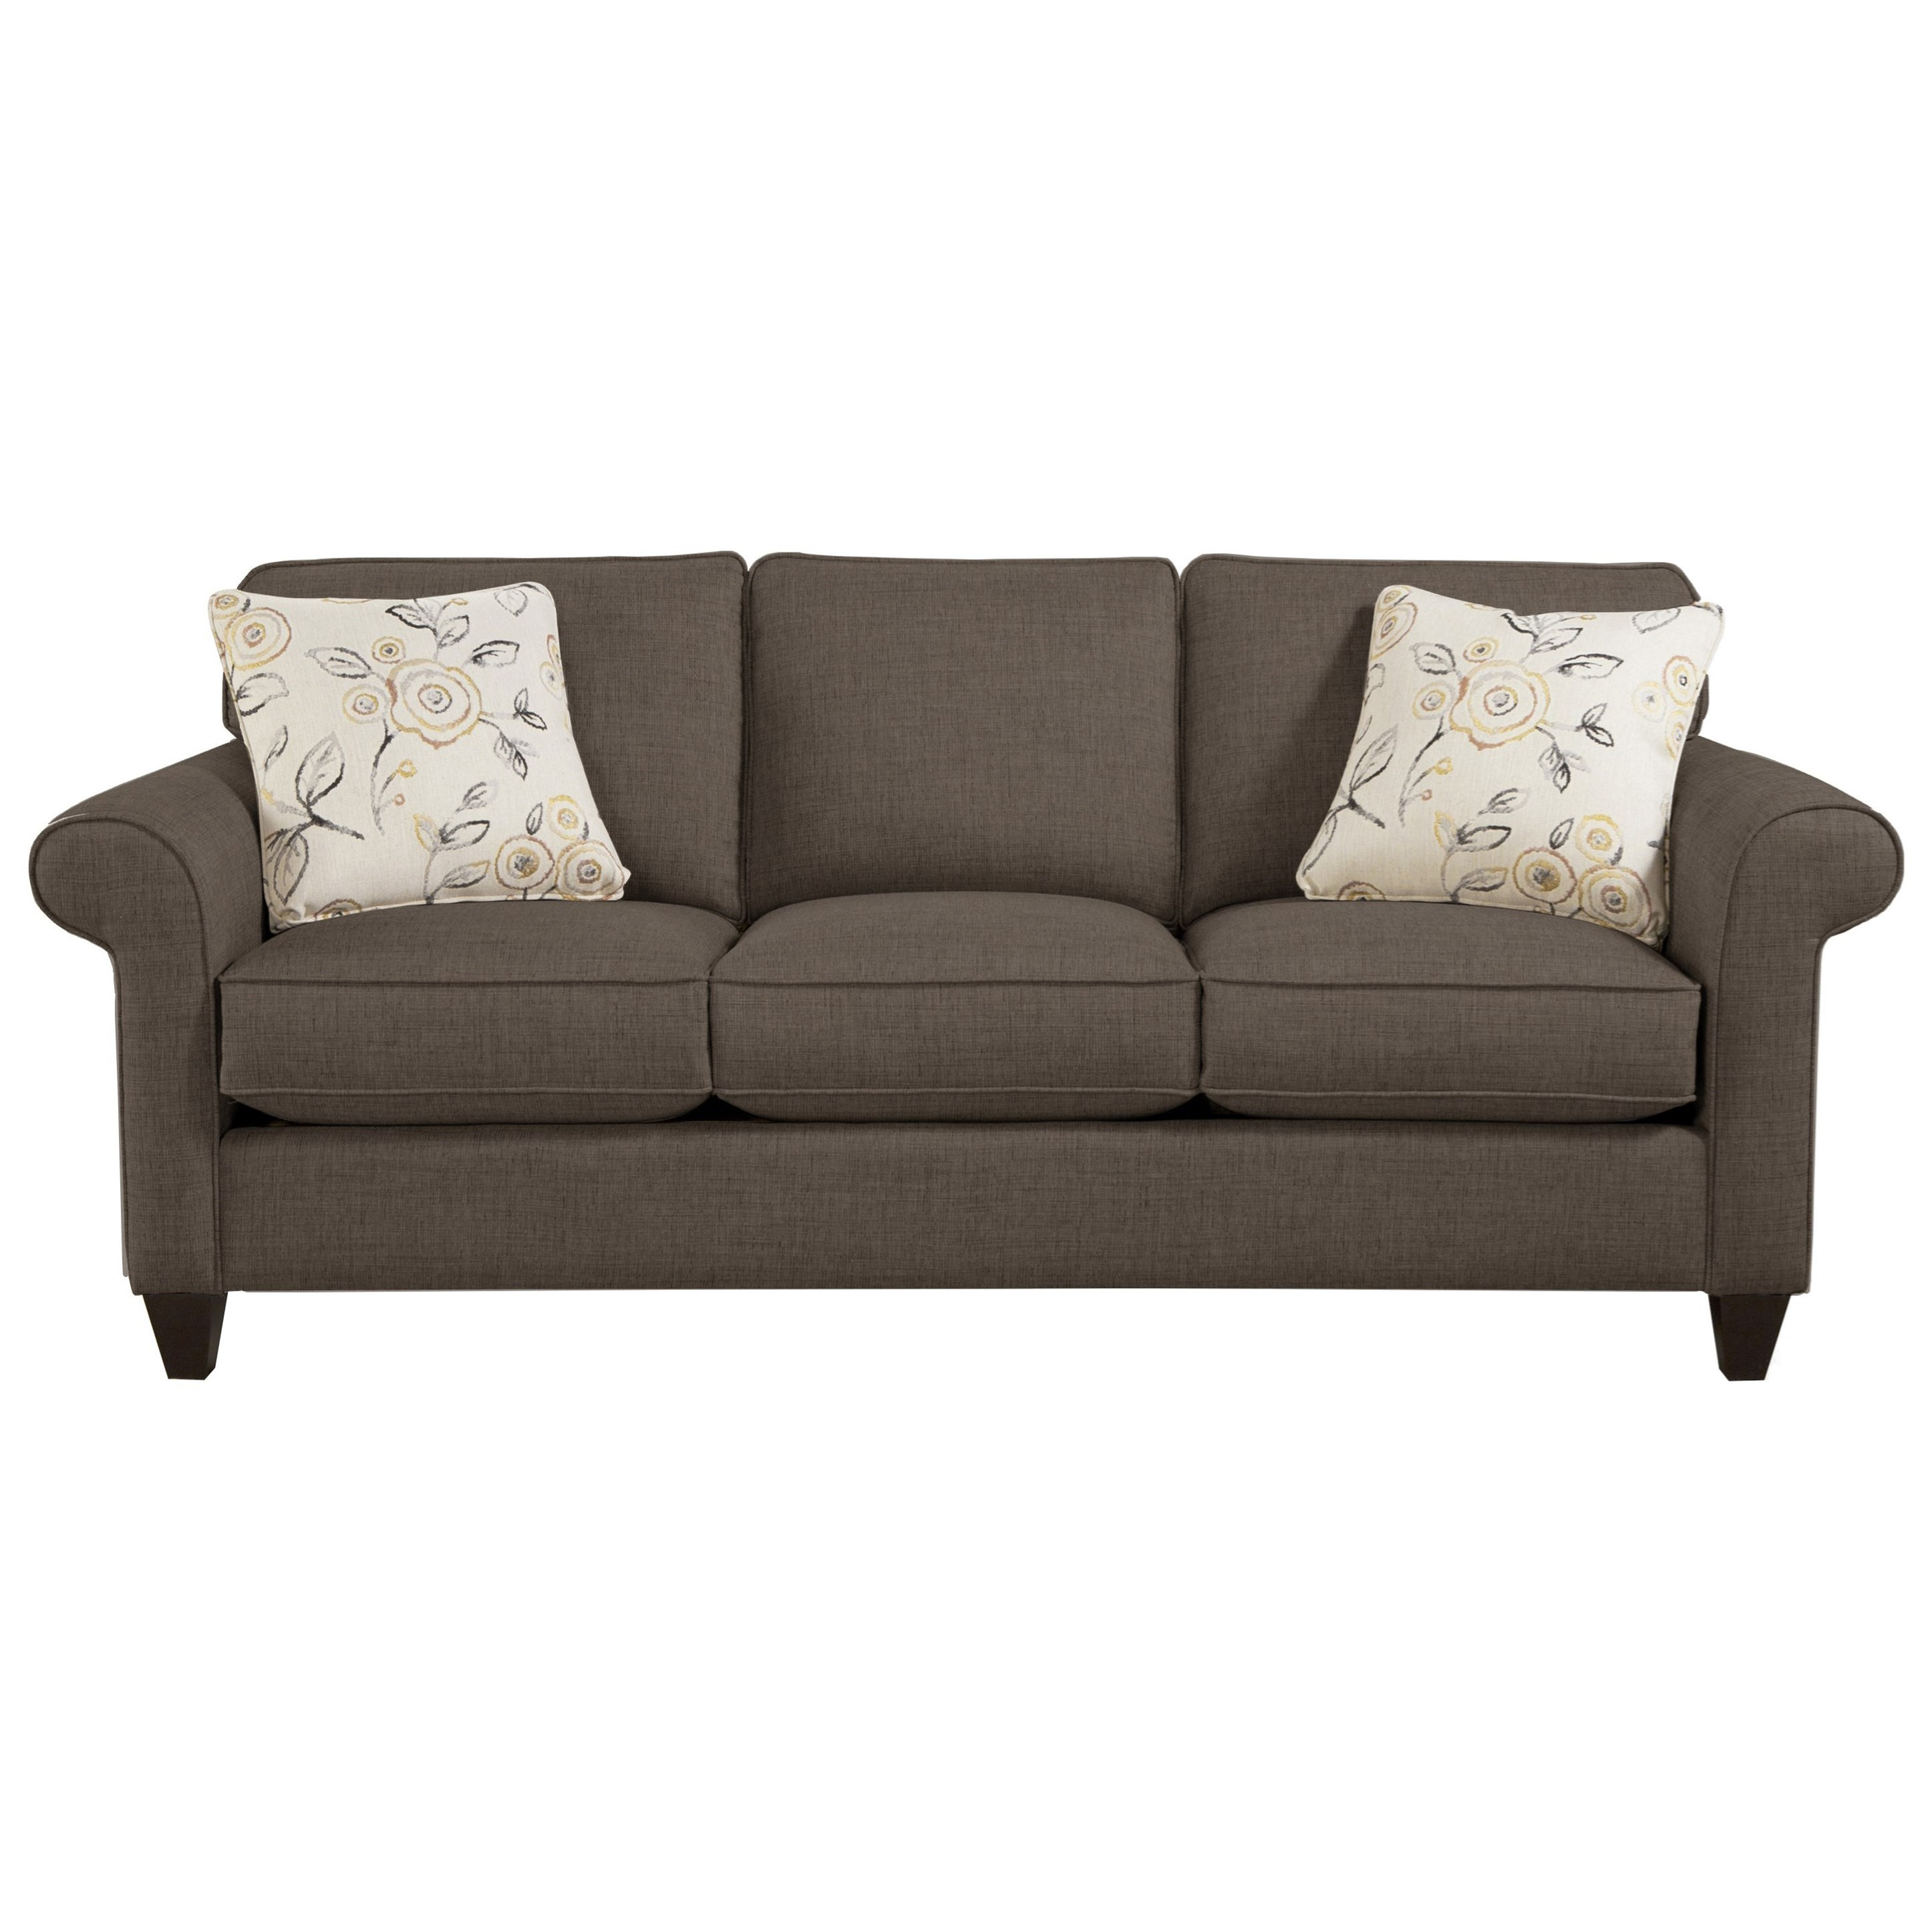 7421 Sofa by Craftmaster at Miller Home